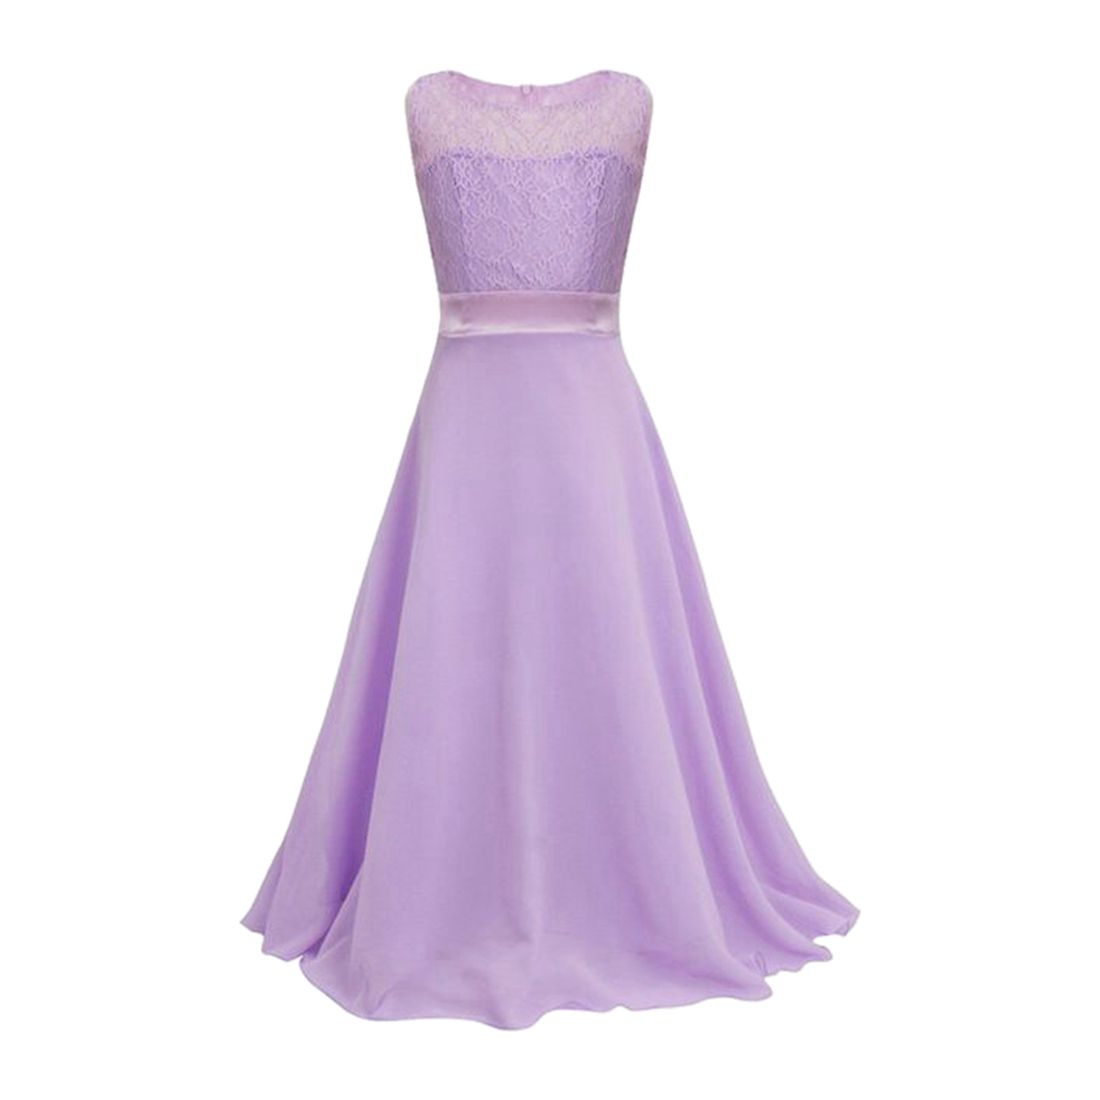 MACH Girls Lace Flower Chiffon Long Dress Kids Beautiful Wedding Party Dress Girl Formal Party Princess Long Dress(Light Purple) girls short in front long in back purple flower girl dress summer 2017 girl formal dress kids party princess custume skd014283